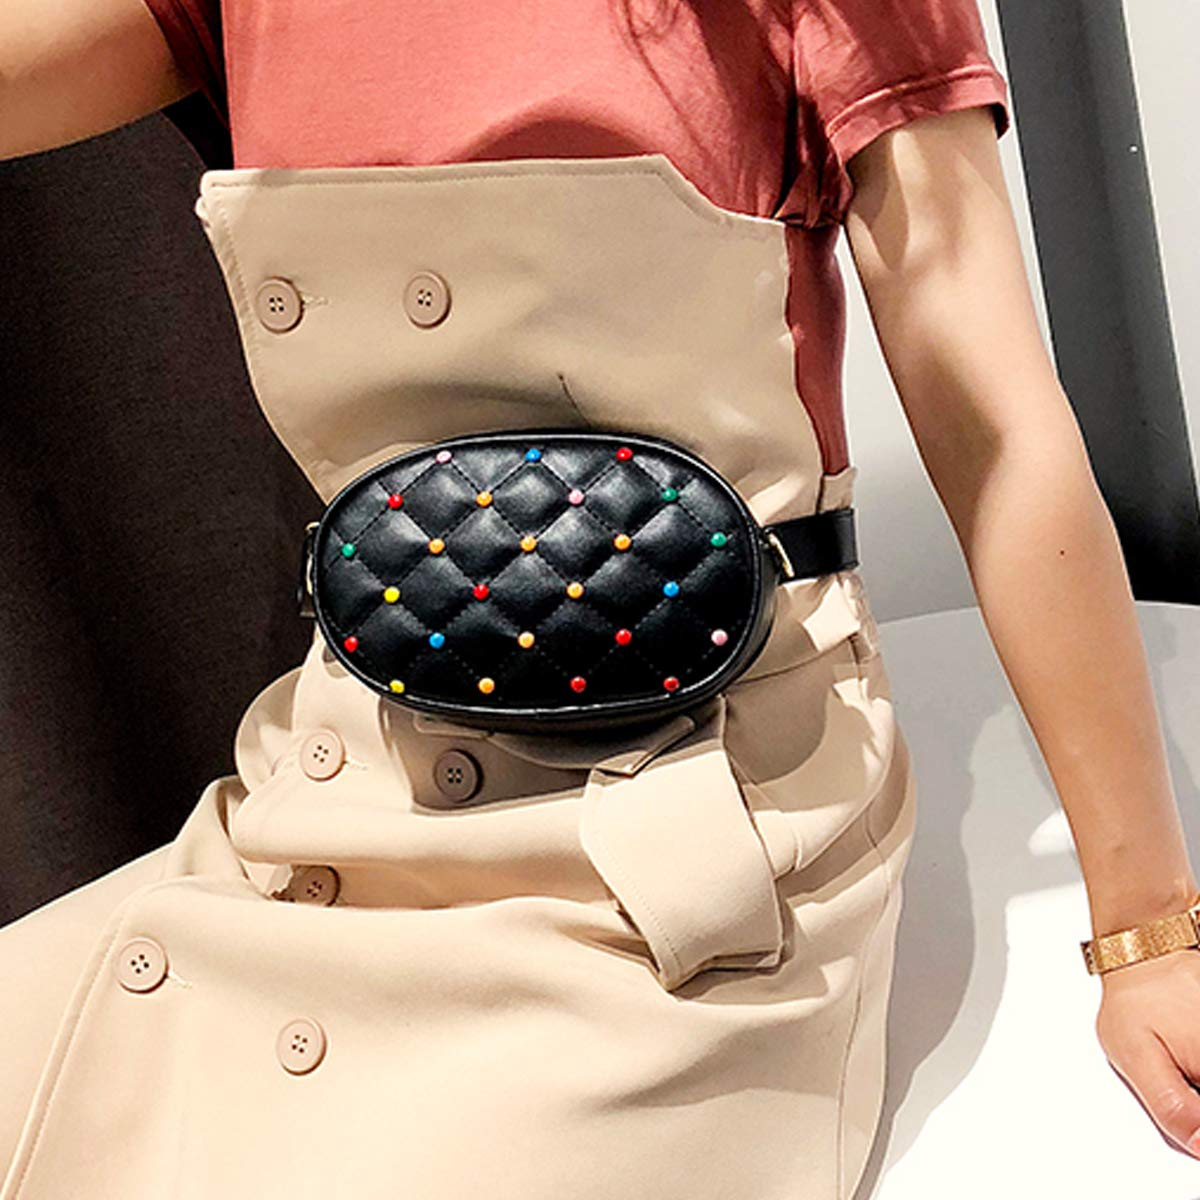 White Women Stylish Quilted Leather Fanny Pack with Color Stud,Dual Use Belt Bag Chain Shoulder Bag Waist Pouch With 2 Straps